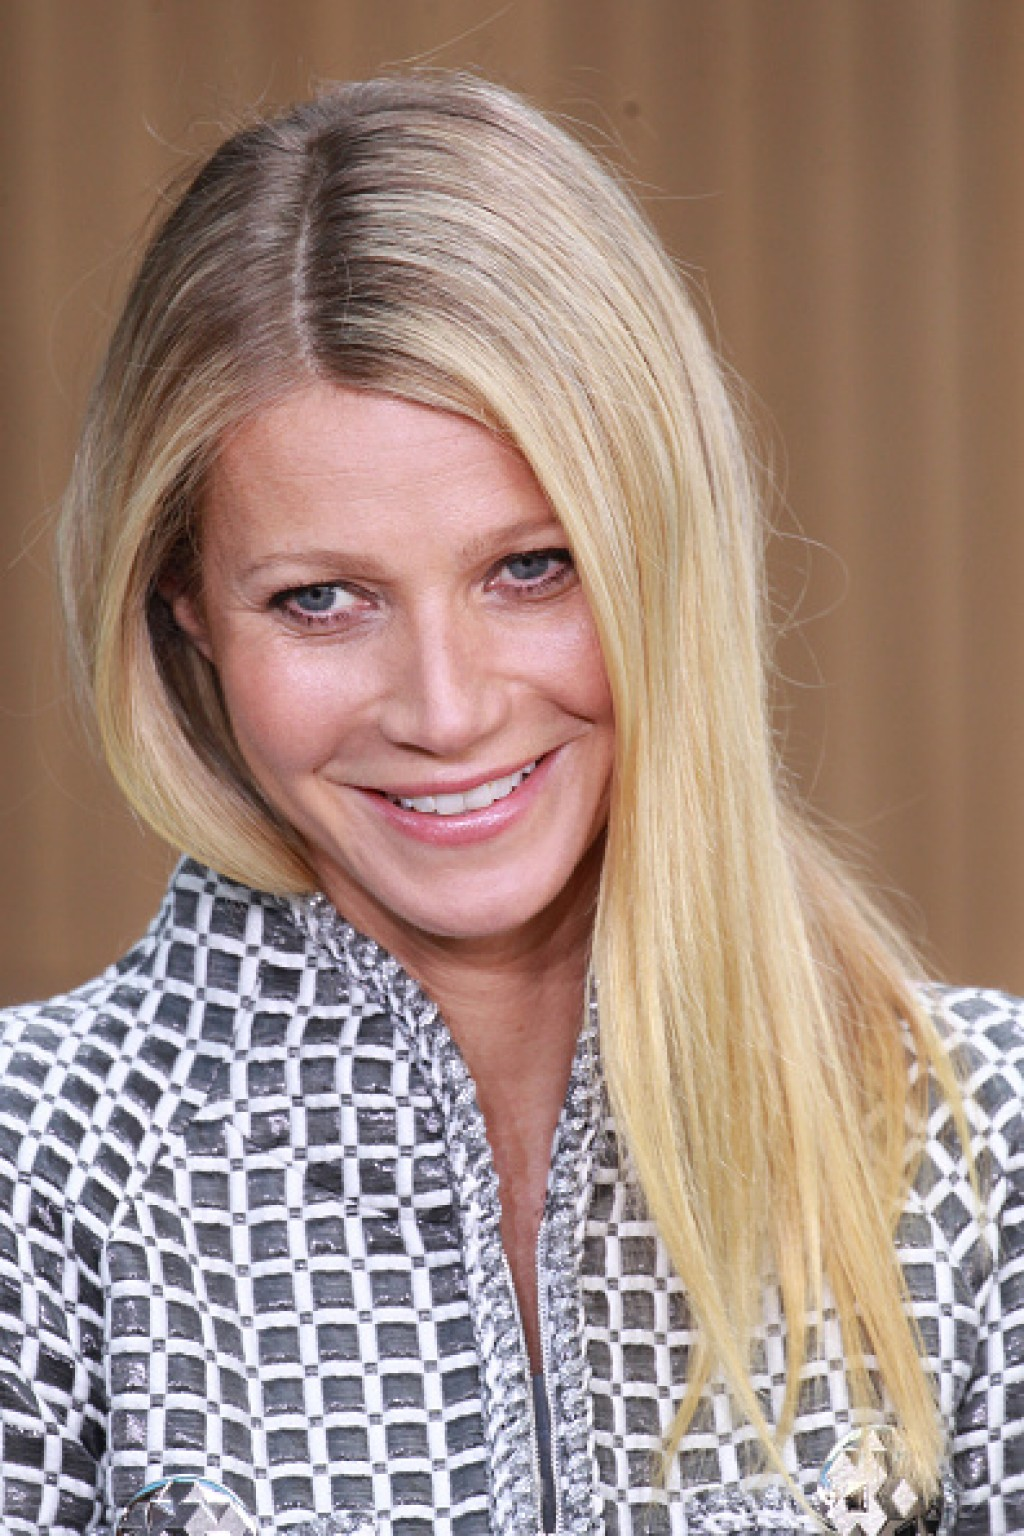 Chanel-Outside-Arrivals-Paris-Fashion-Week-Gwyneth-face-1024x1536